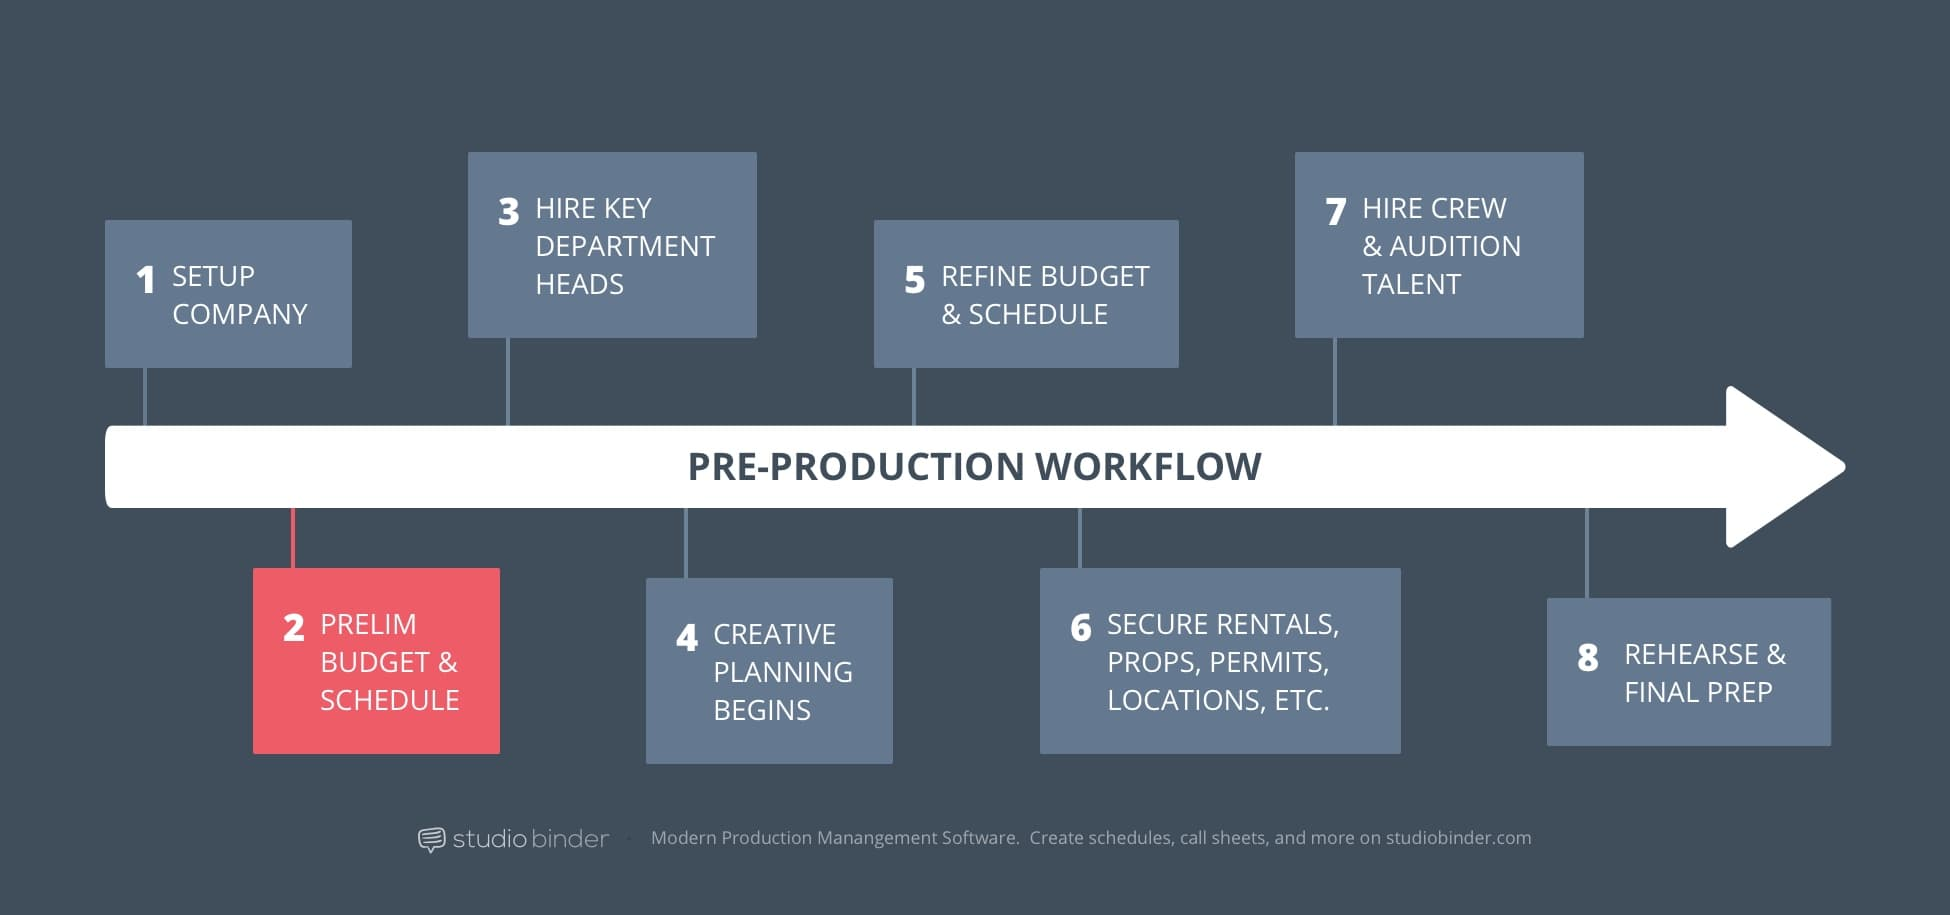 2 - StudioBinder Pre-Production Workflow - Prelim Budget and Scheduling